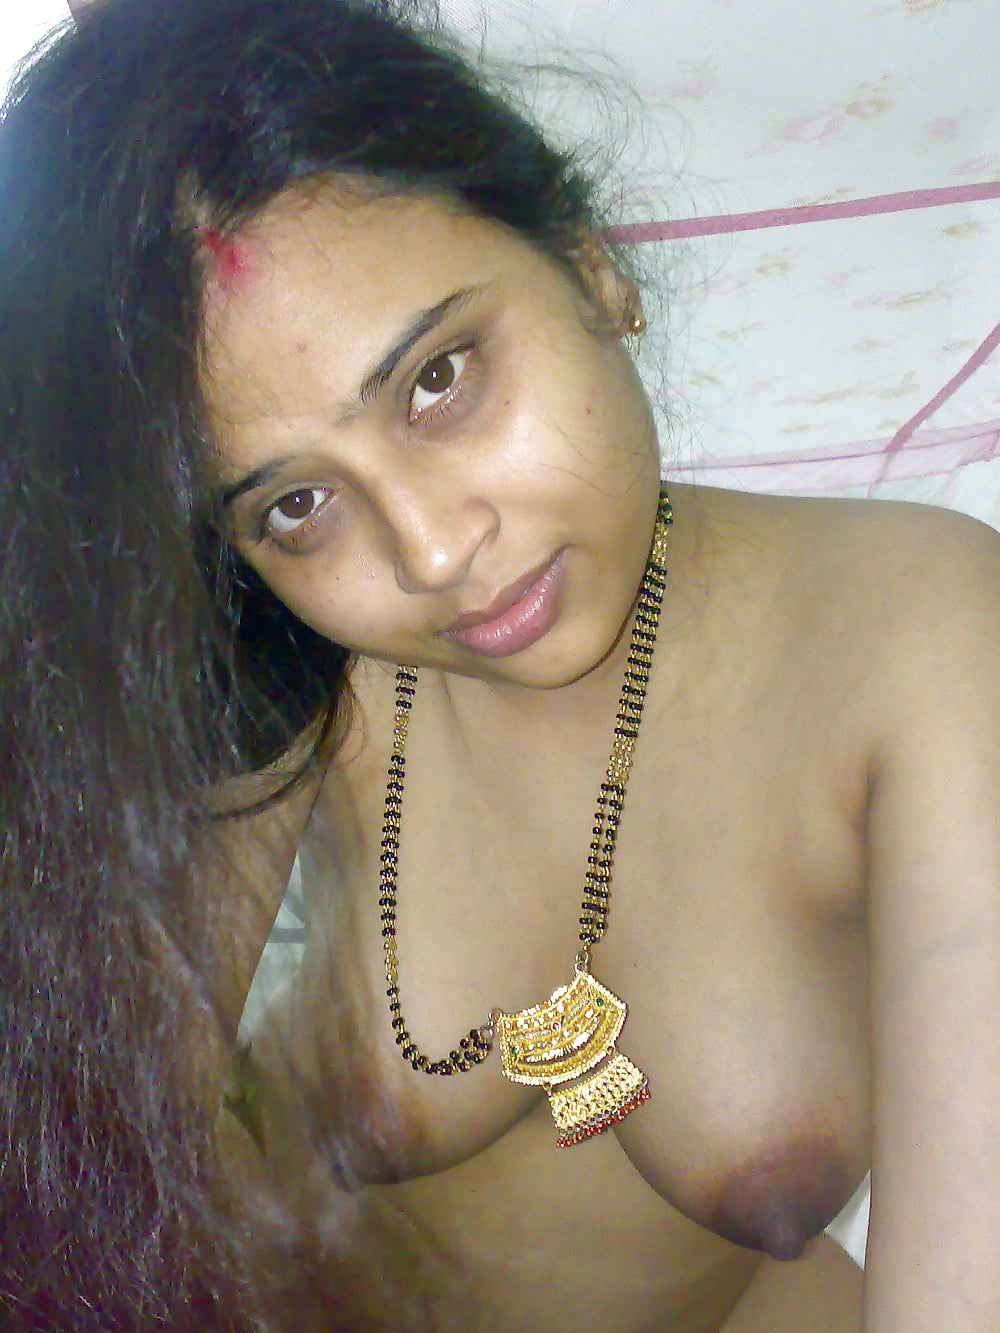 hidden-naked-photo-of-bangladeshi-girl